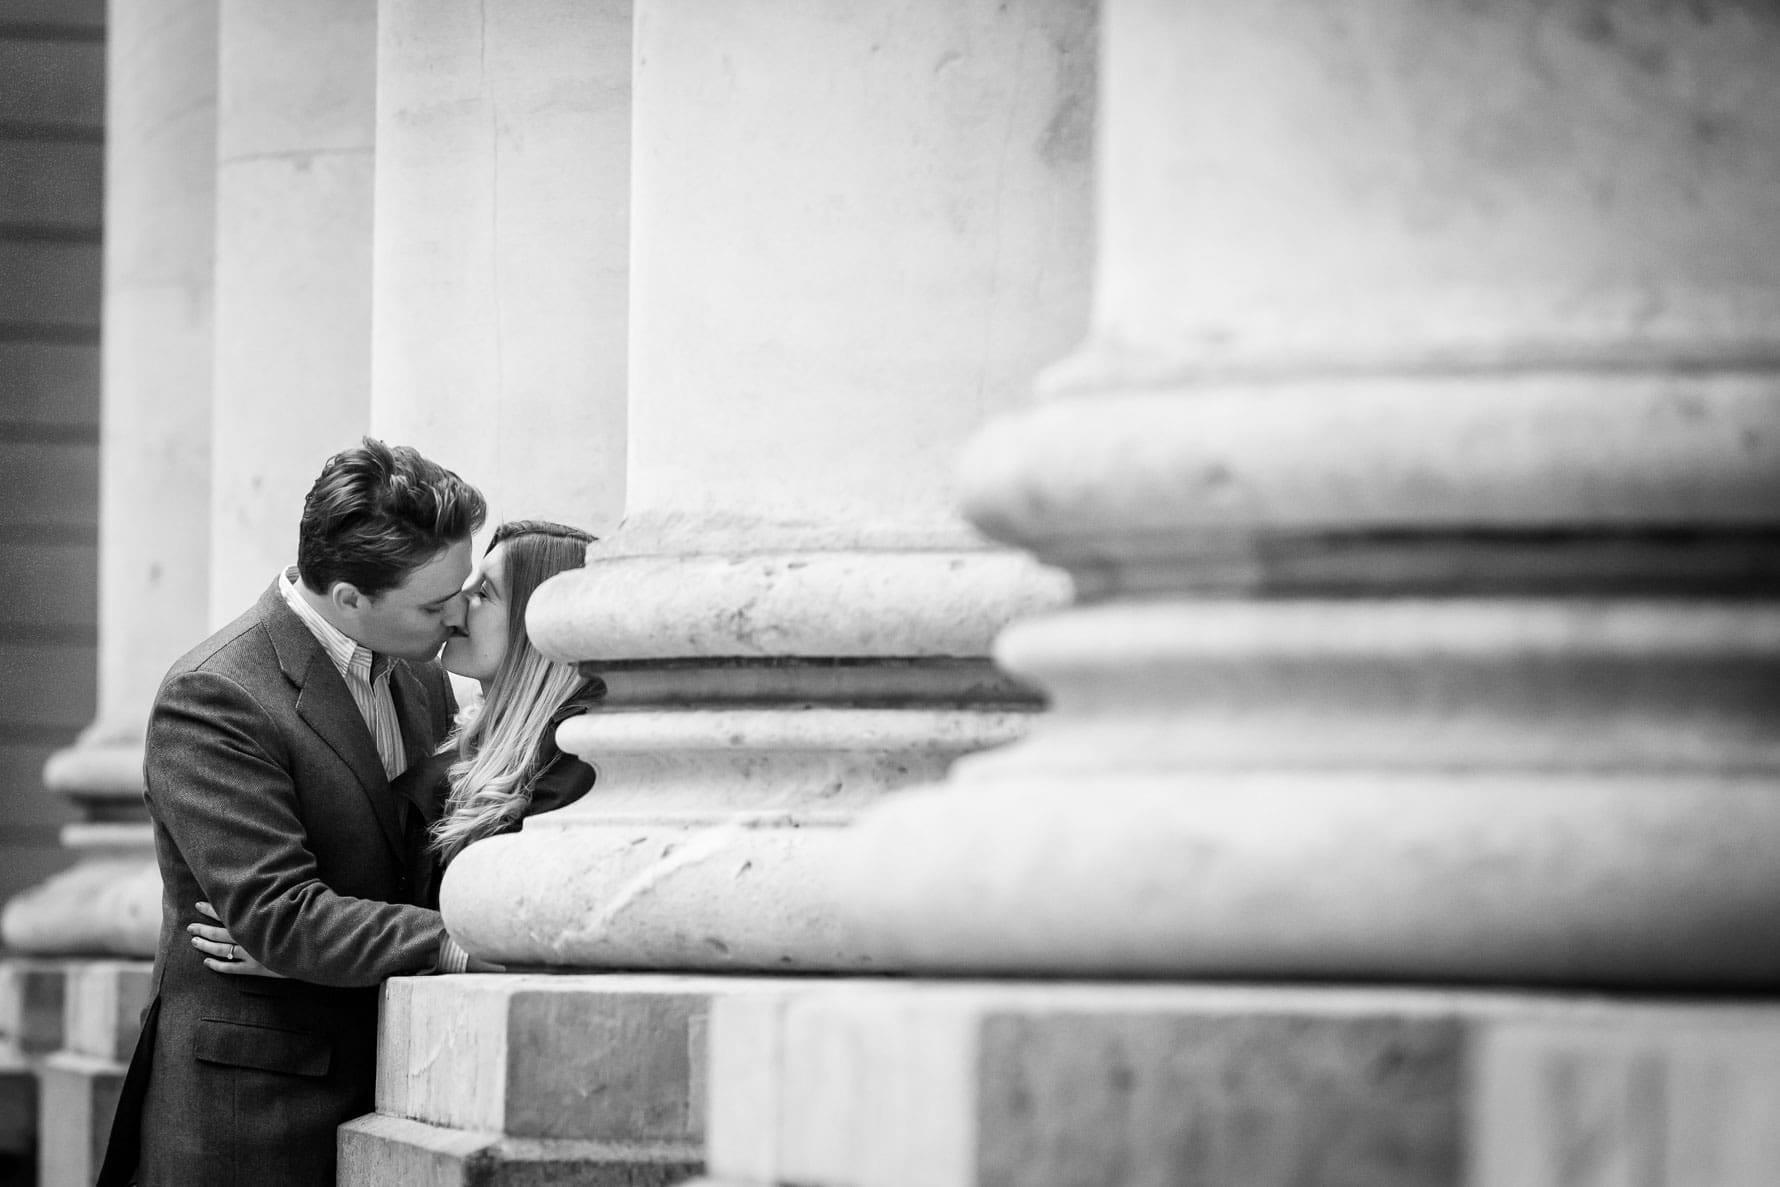 Kissing outside The Royal Exchange in London